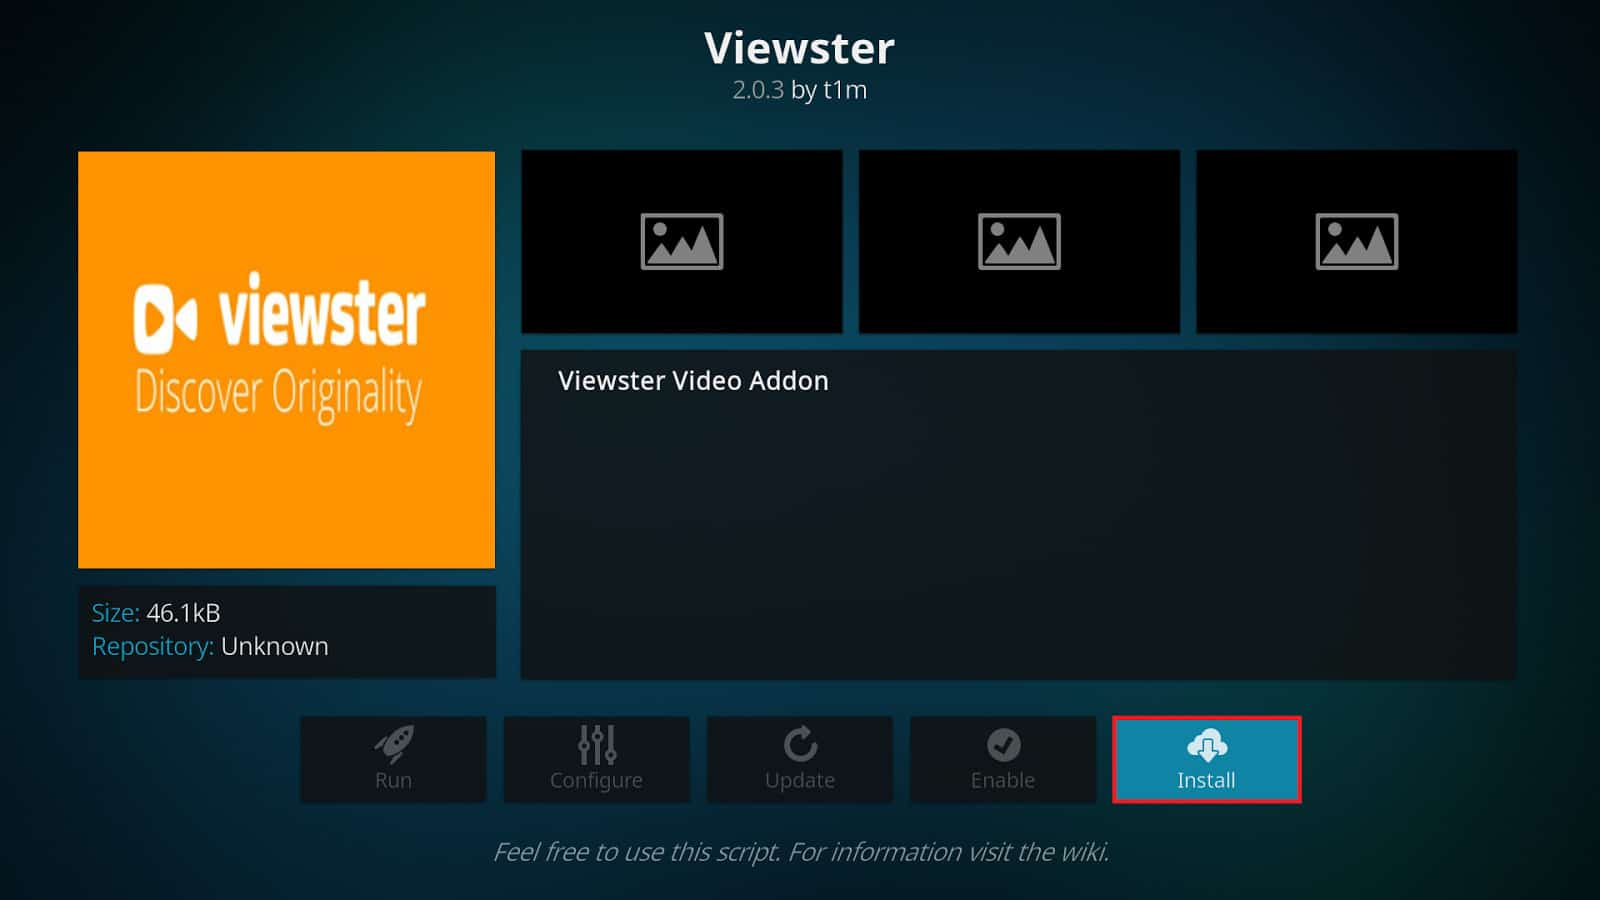 Switzerland Based Streaming Service Viewster Offers Up Free Movies And Tv Shows One Of The Best Things About Viewster Is That You Can Watch It From